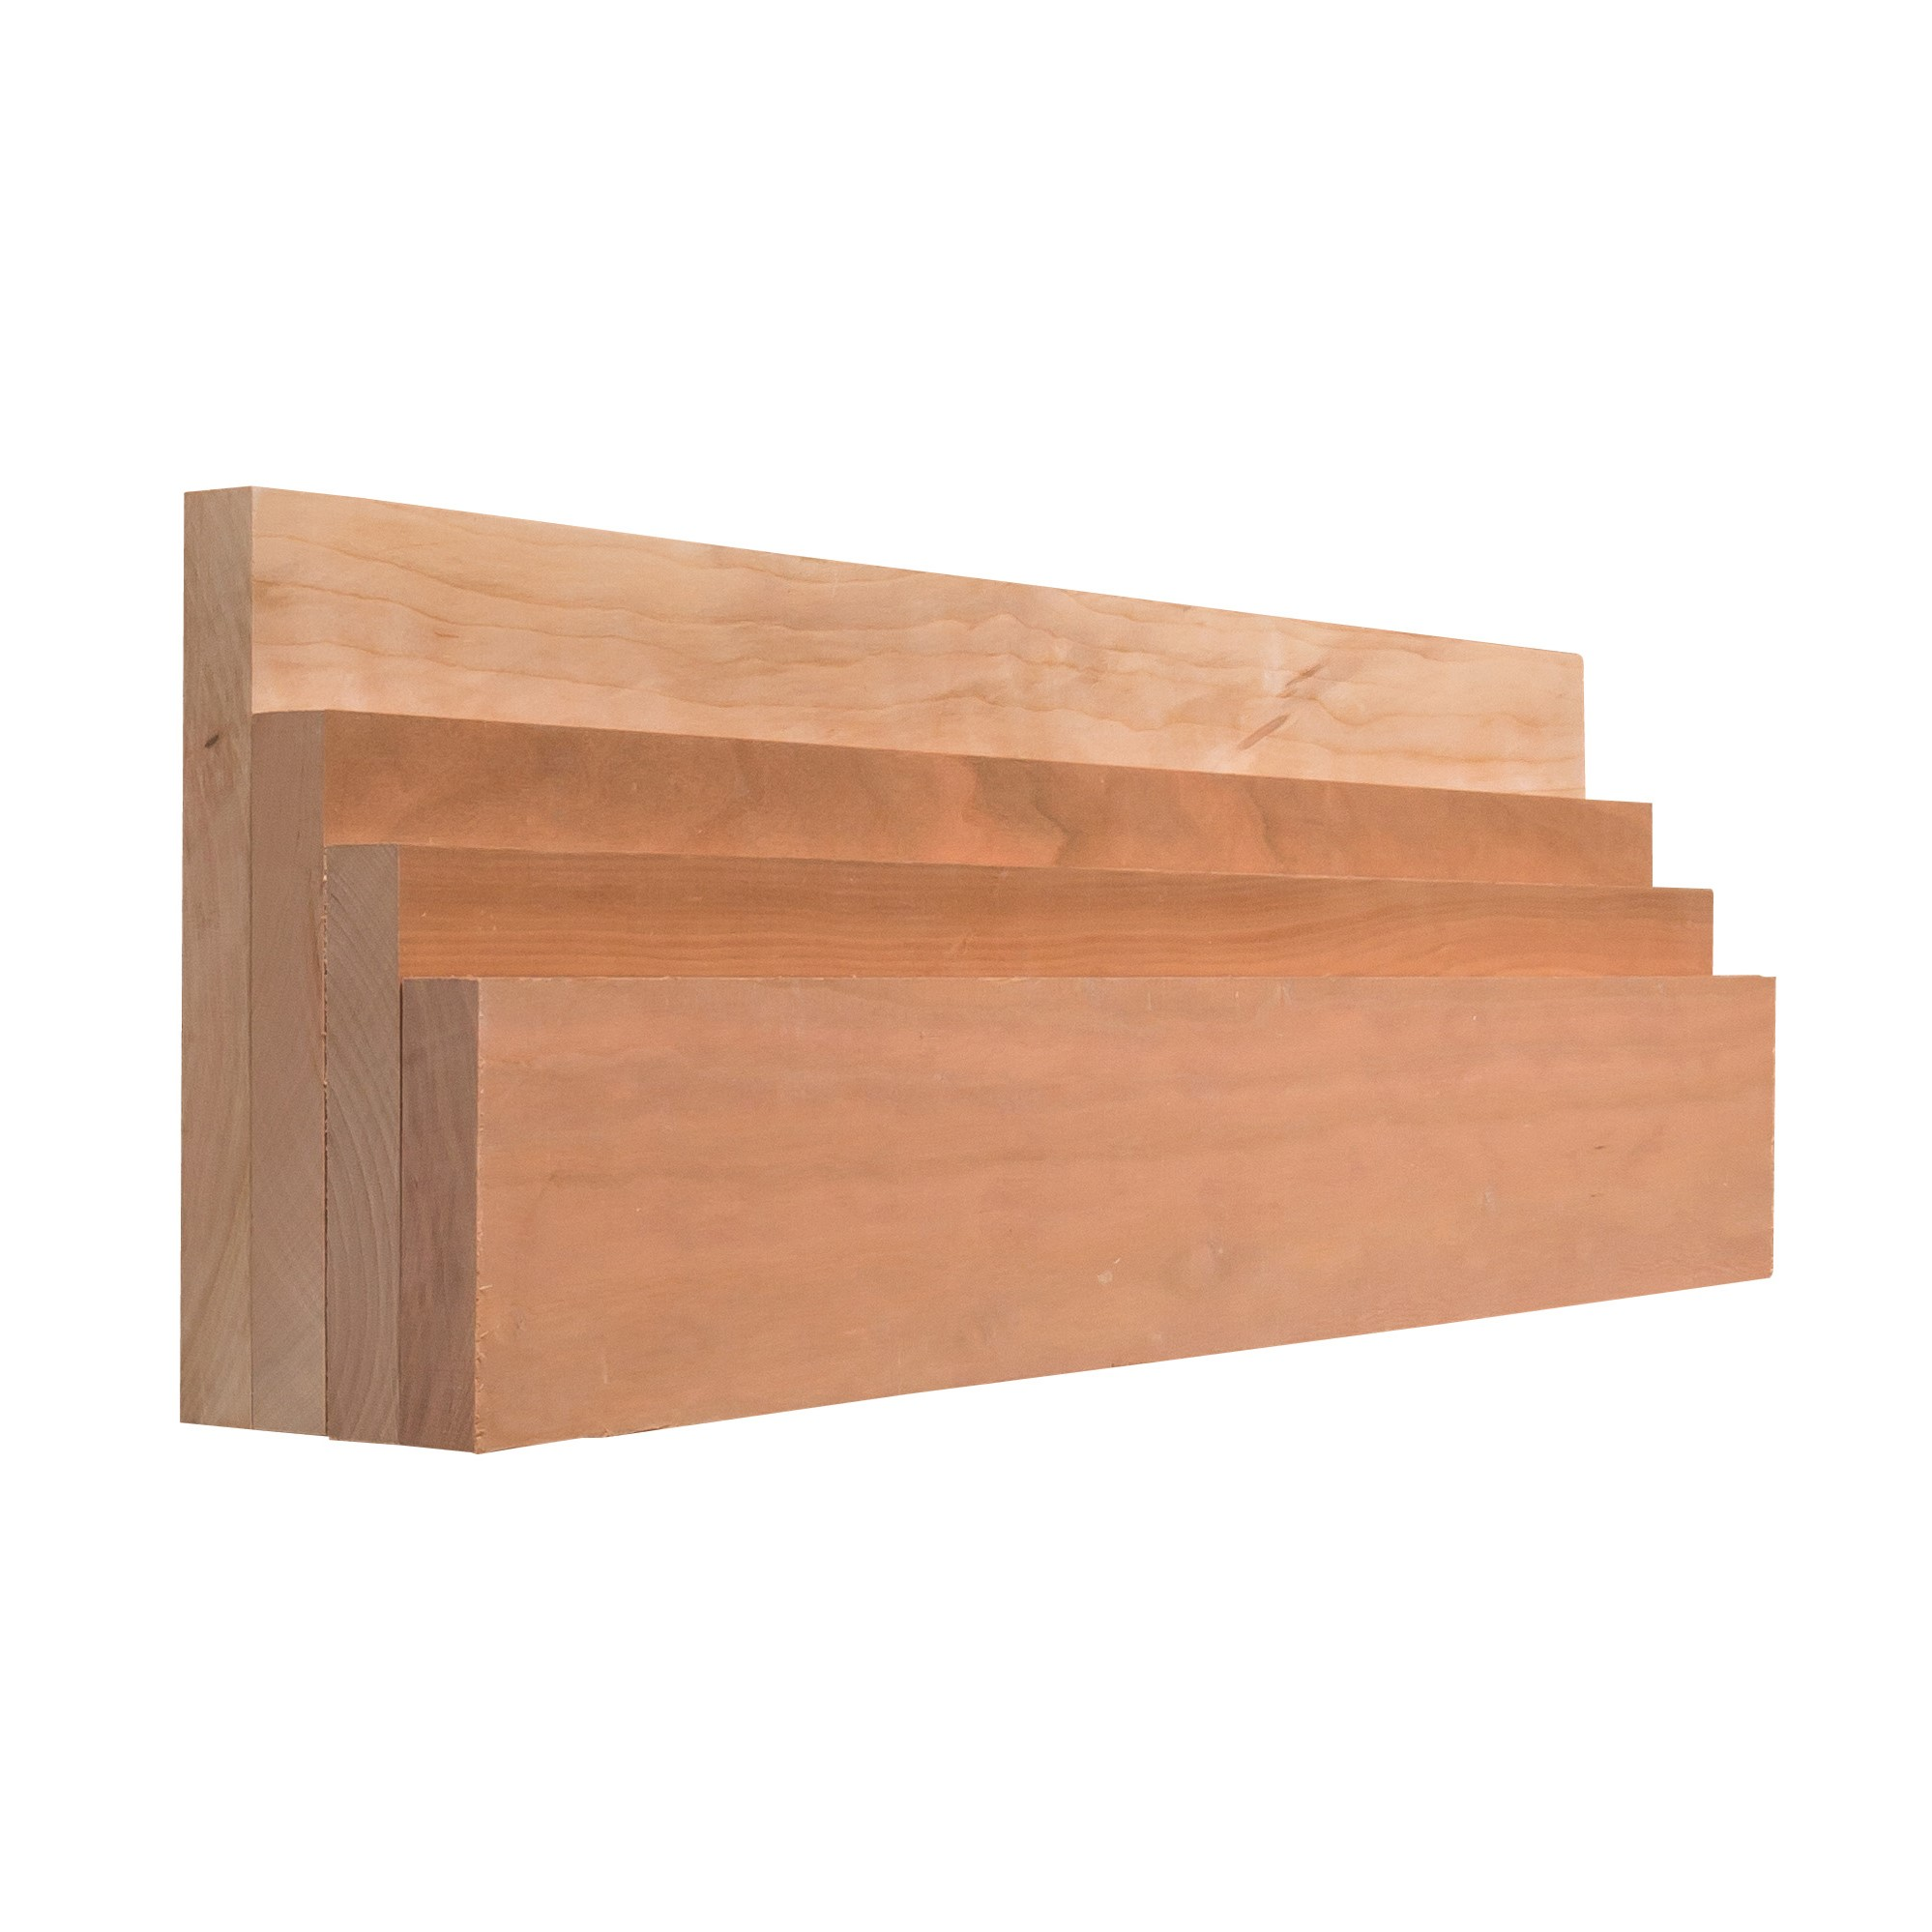 American Cherry Lumber  sc 1 th 225 & Millwork supply: finish materials for homeowners u0026 contractors pezcame.com